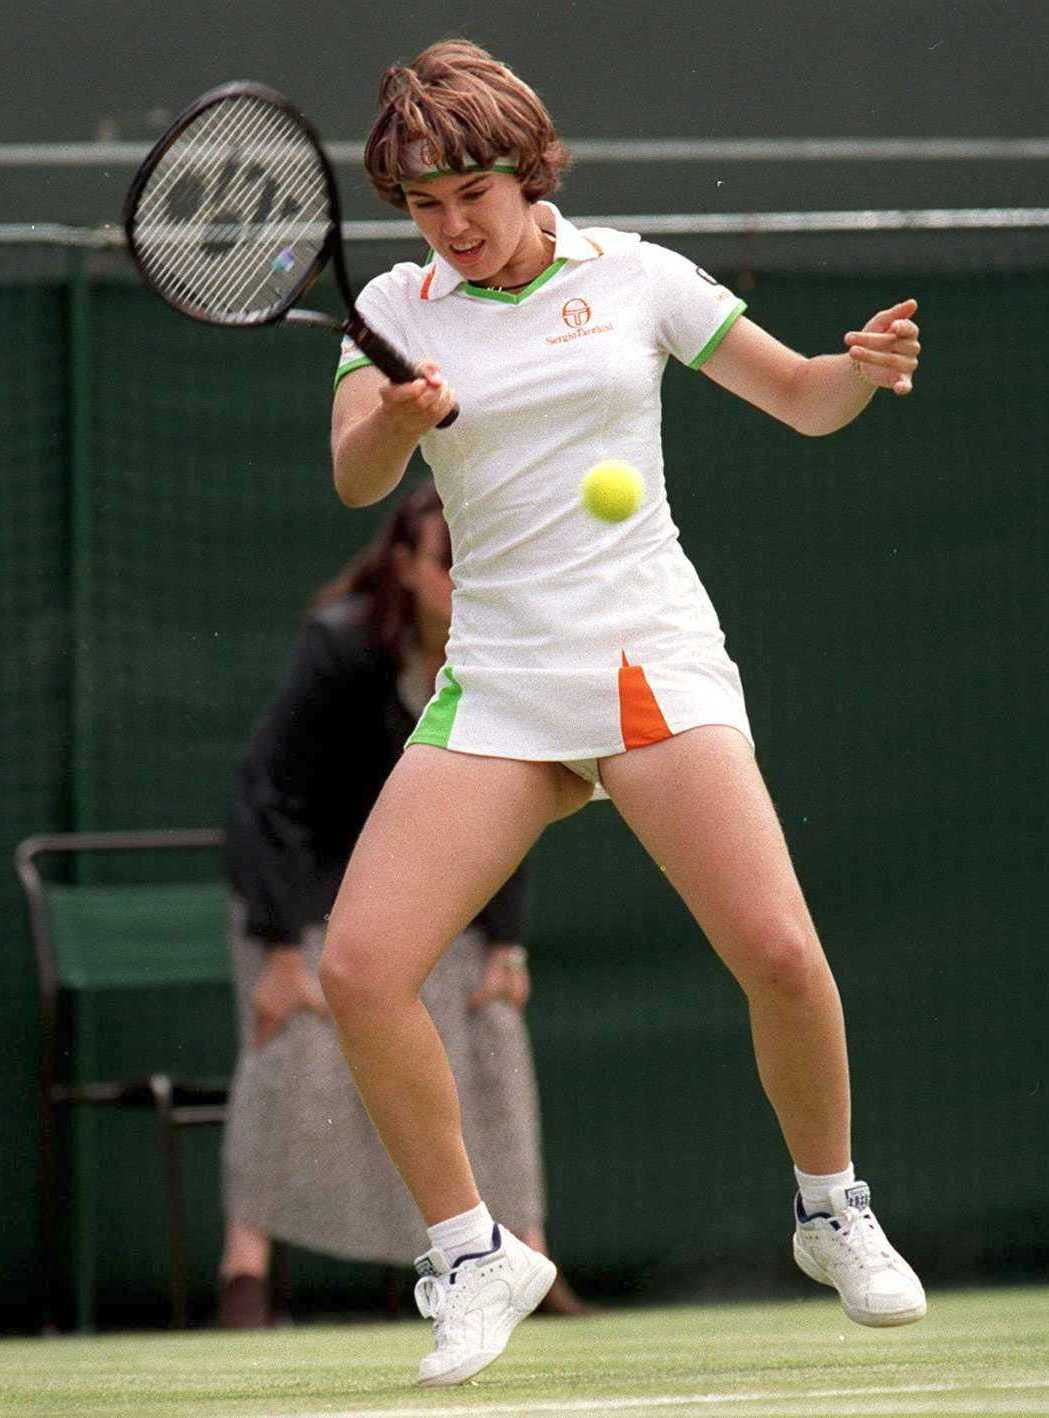 Player martina hingis naked tennis